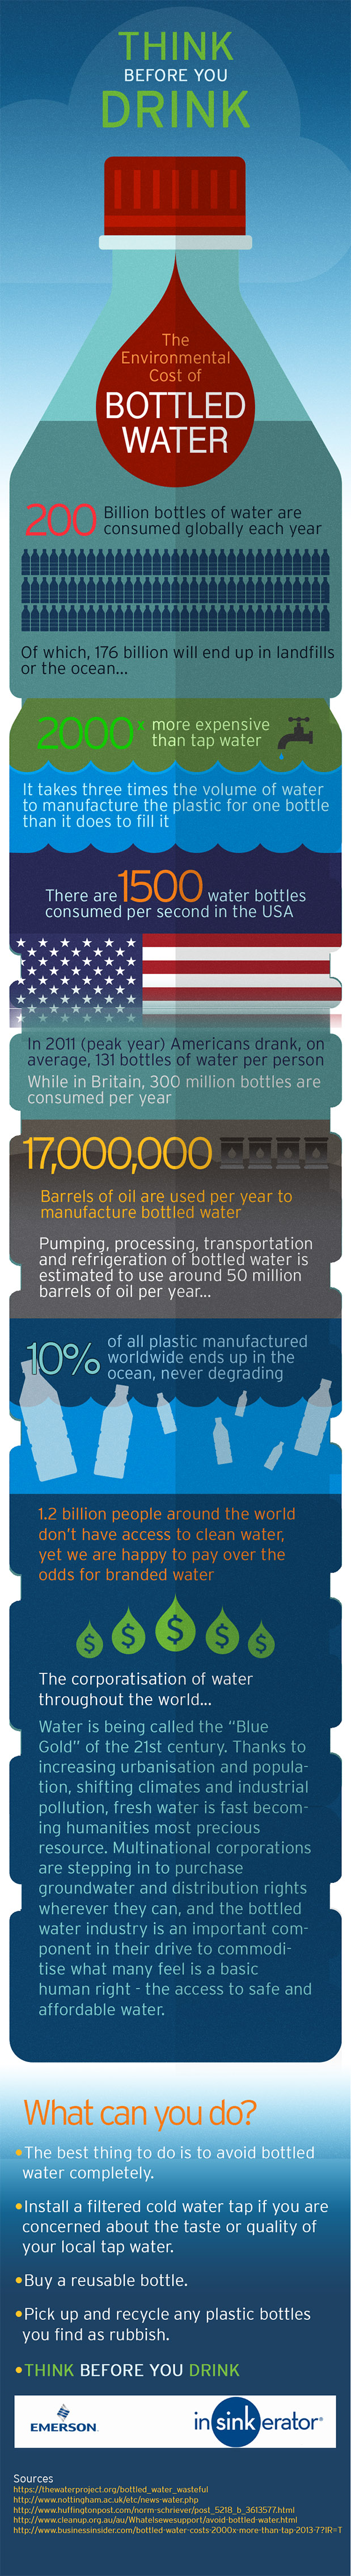 Environmental cost of bottled water